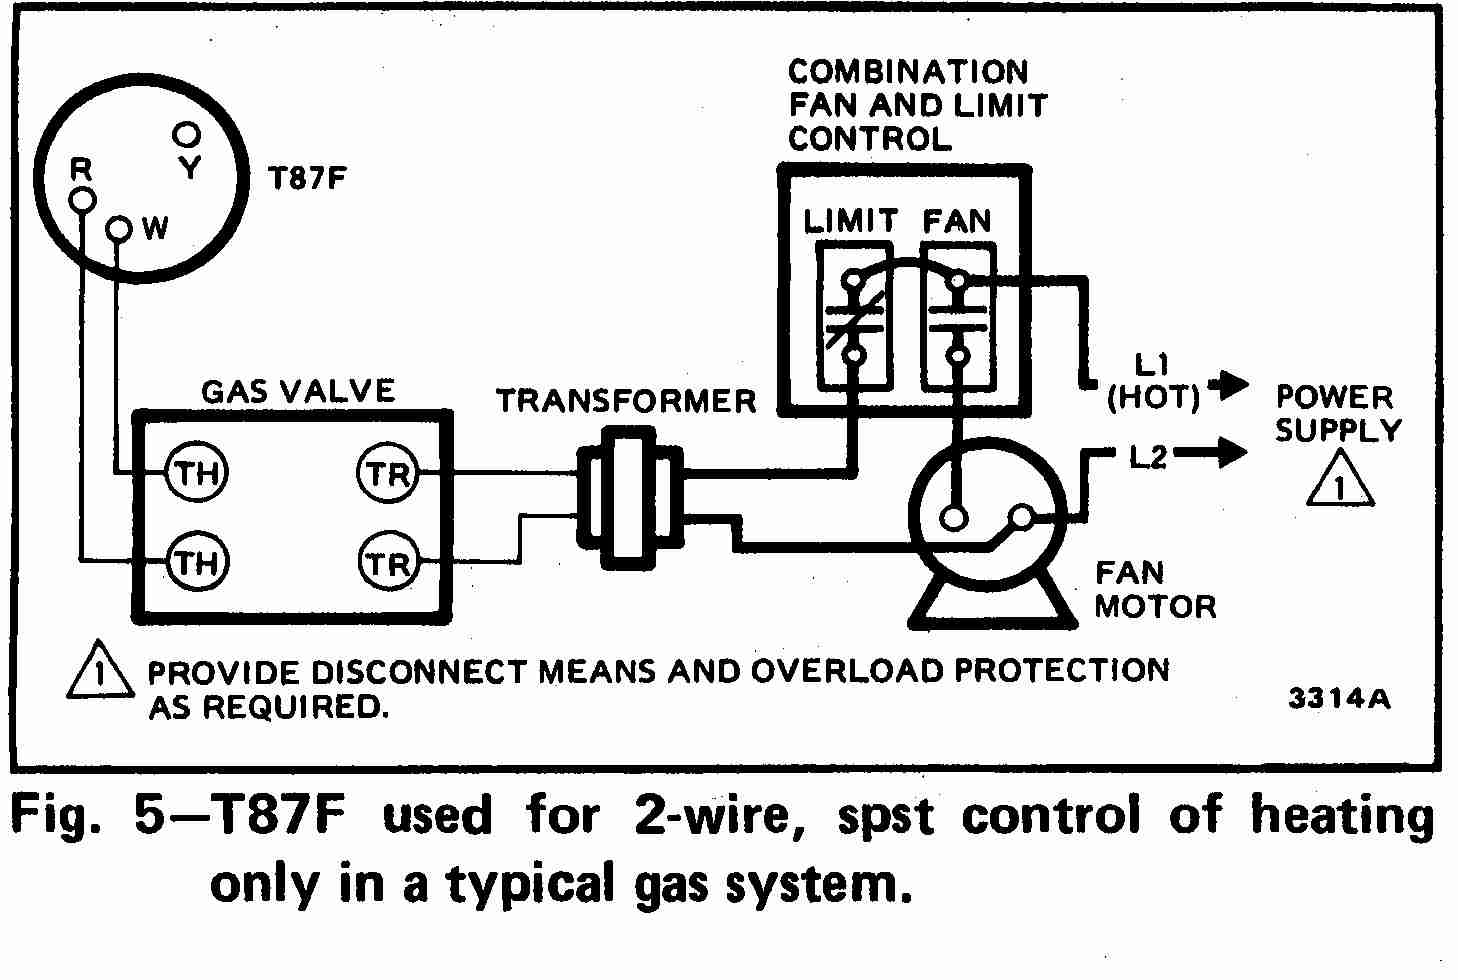 TT_T87F_0002_2Wg_DJF guide to wiring connections for room thermostats 2 wire thermostat wiring diagram heat only at sewacar.co